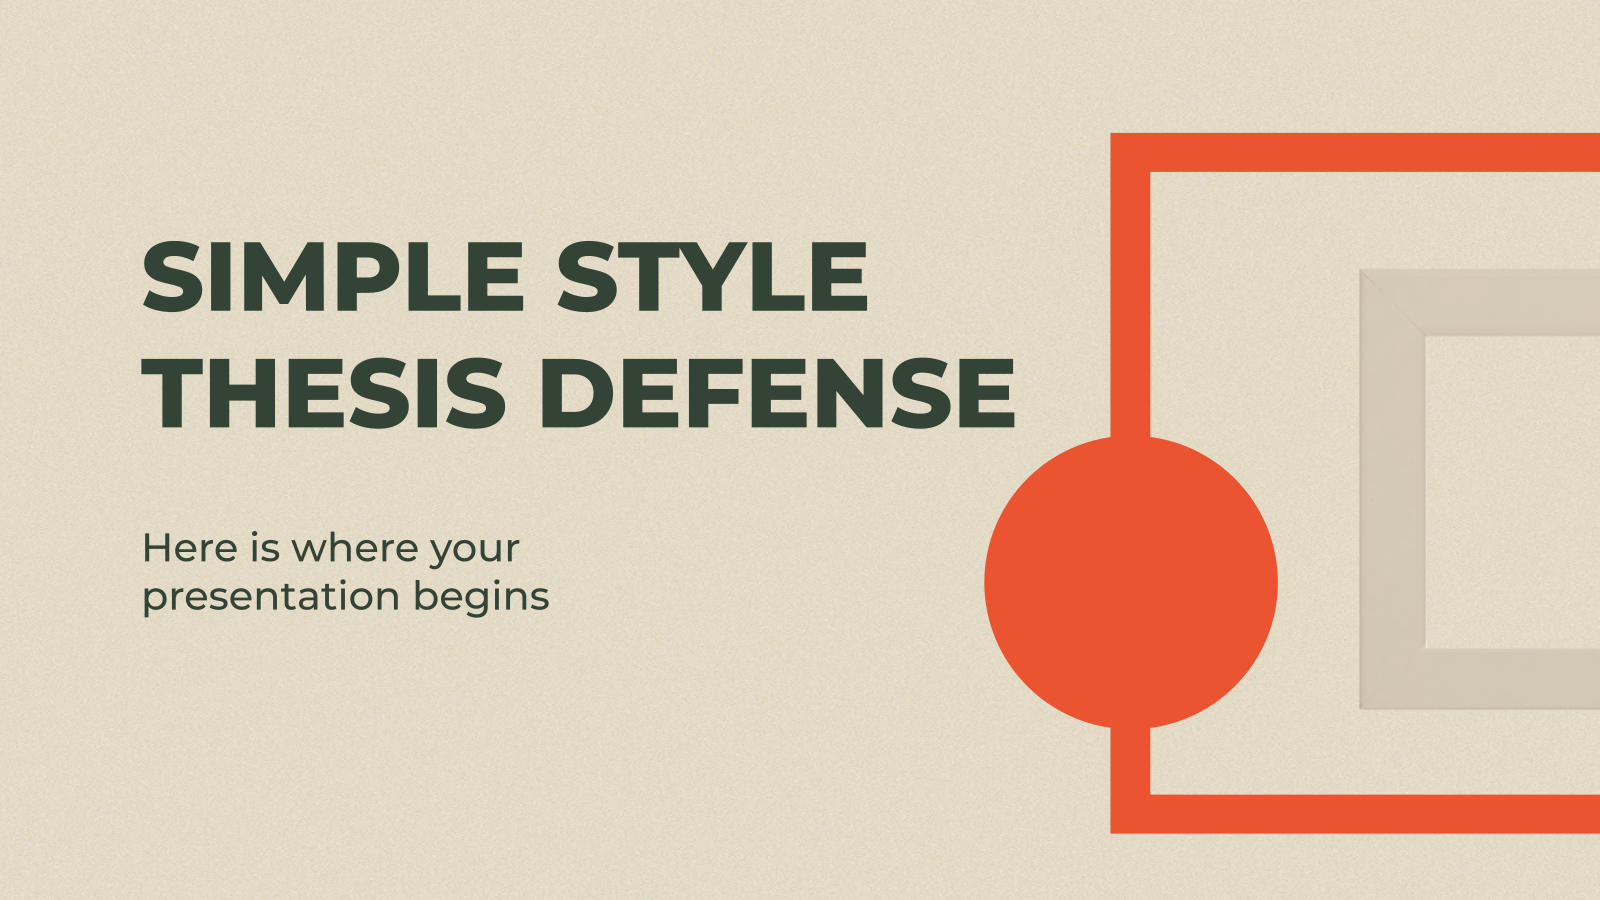 Simple Style Thesis Defense presentation template